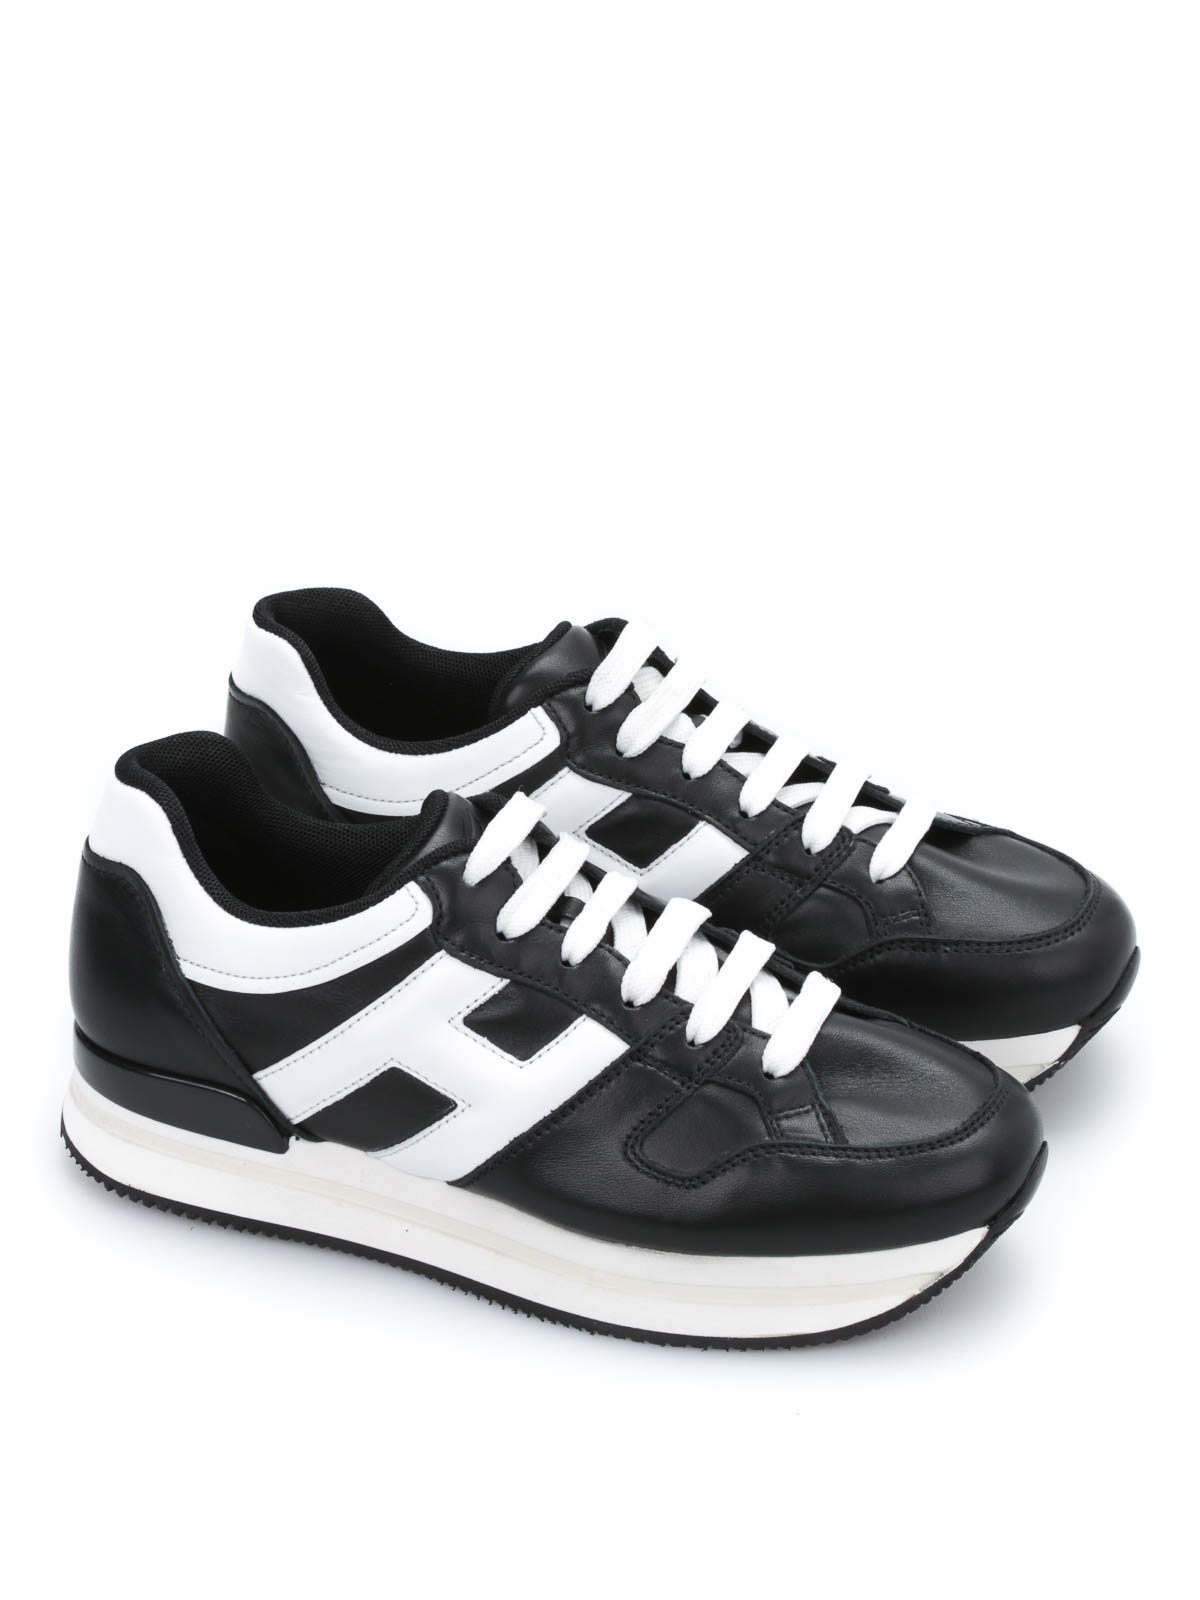 hogan sneakers h222 nero